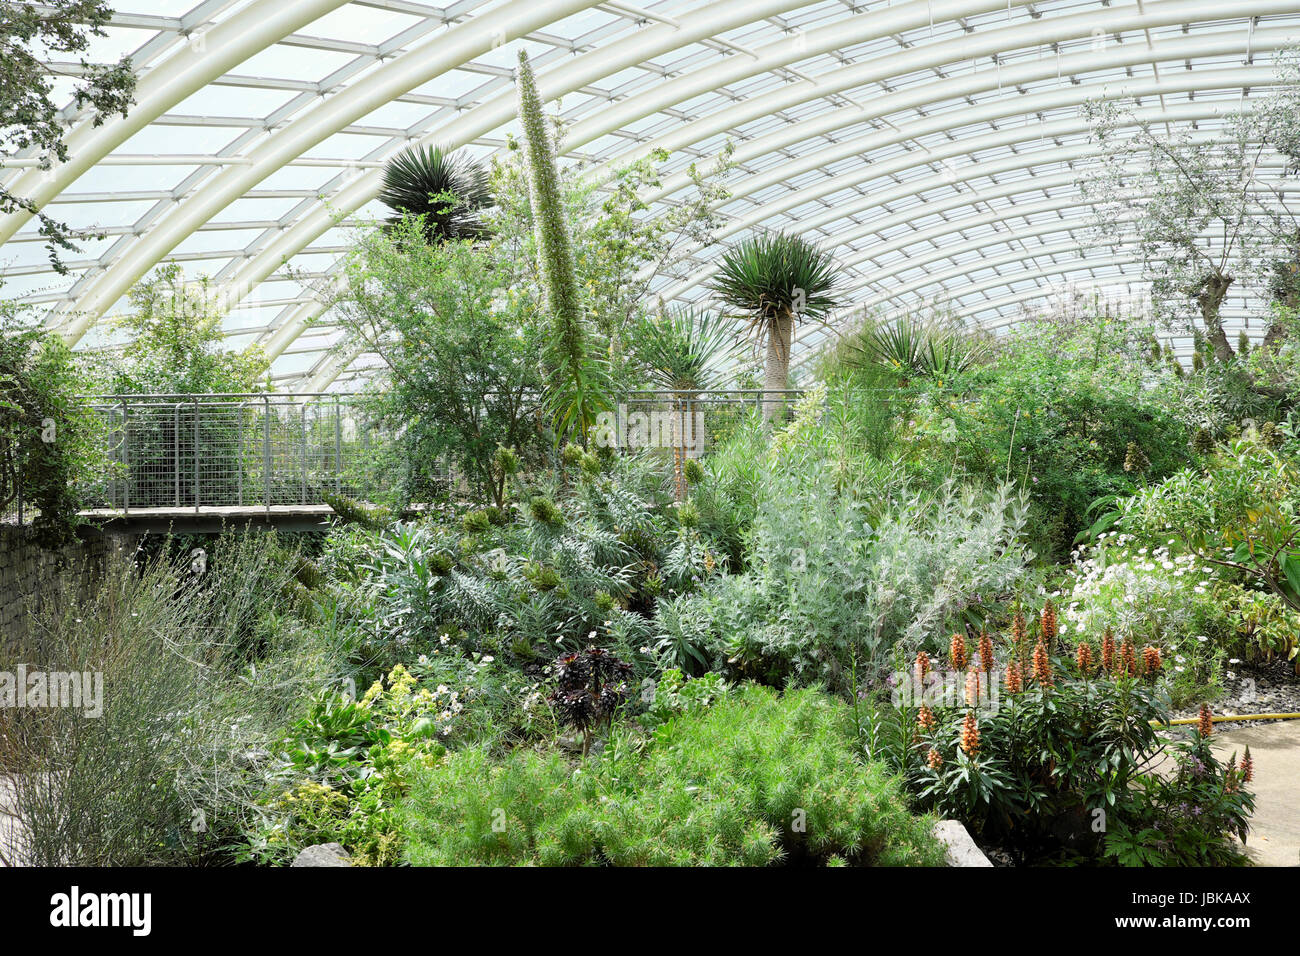 Norman Foster Great Glasshouse interior at the NATIONAL BOTANIC GARDEN OF WALES UK   KATHY DEWITT - Stock Image